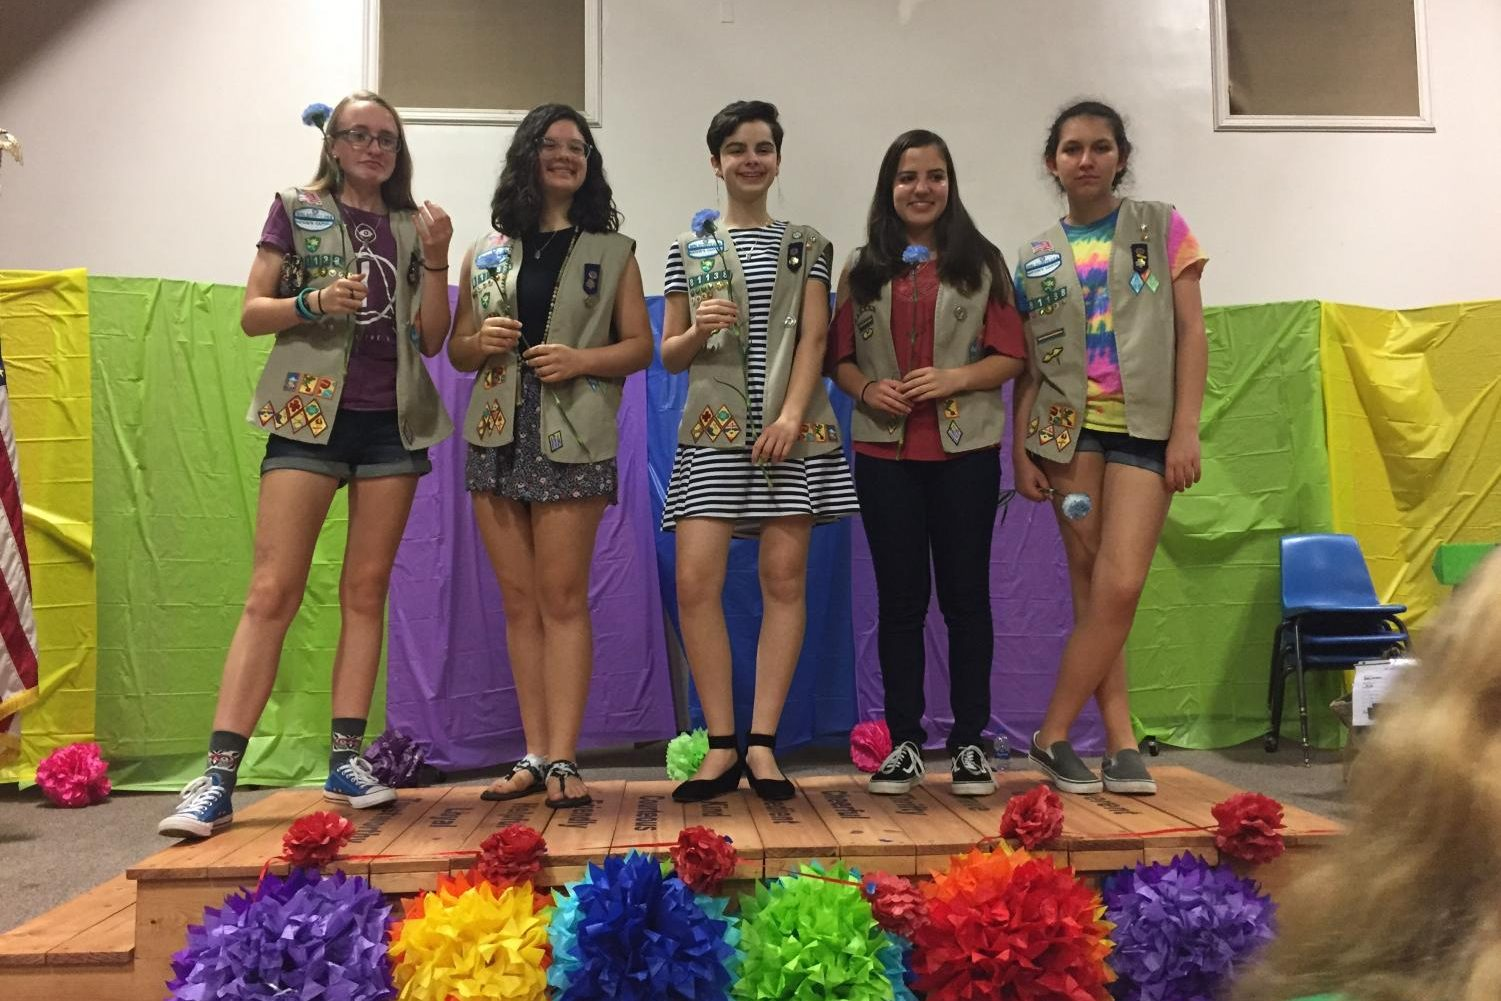 Alyson Sniffen, second from left, poses on bridge after Girl Scout bridging ceremony with Abbey Parker, Dana Kullgren, Yesenia Montenegro, and Keekee Myers